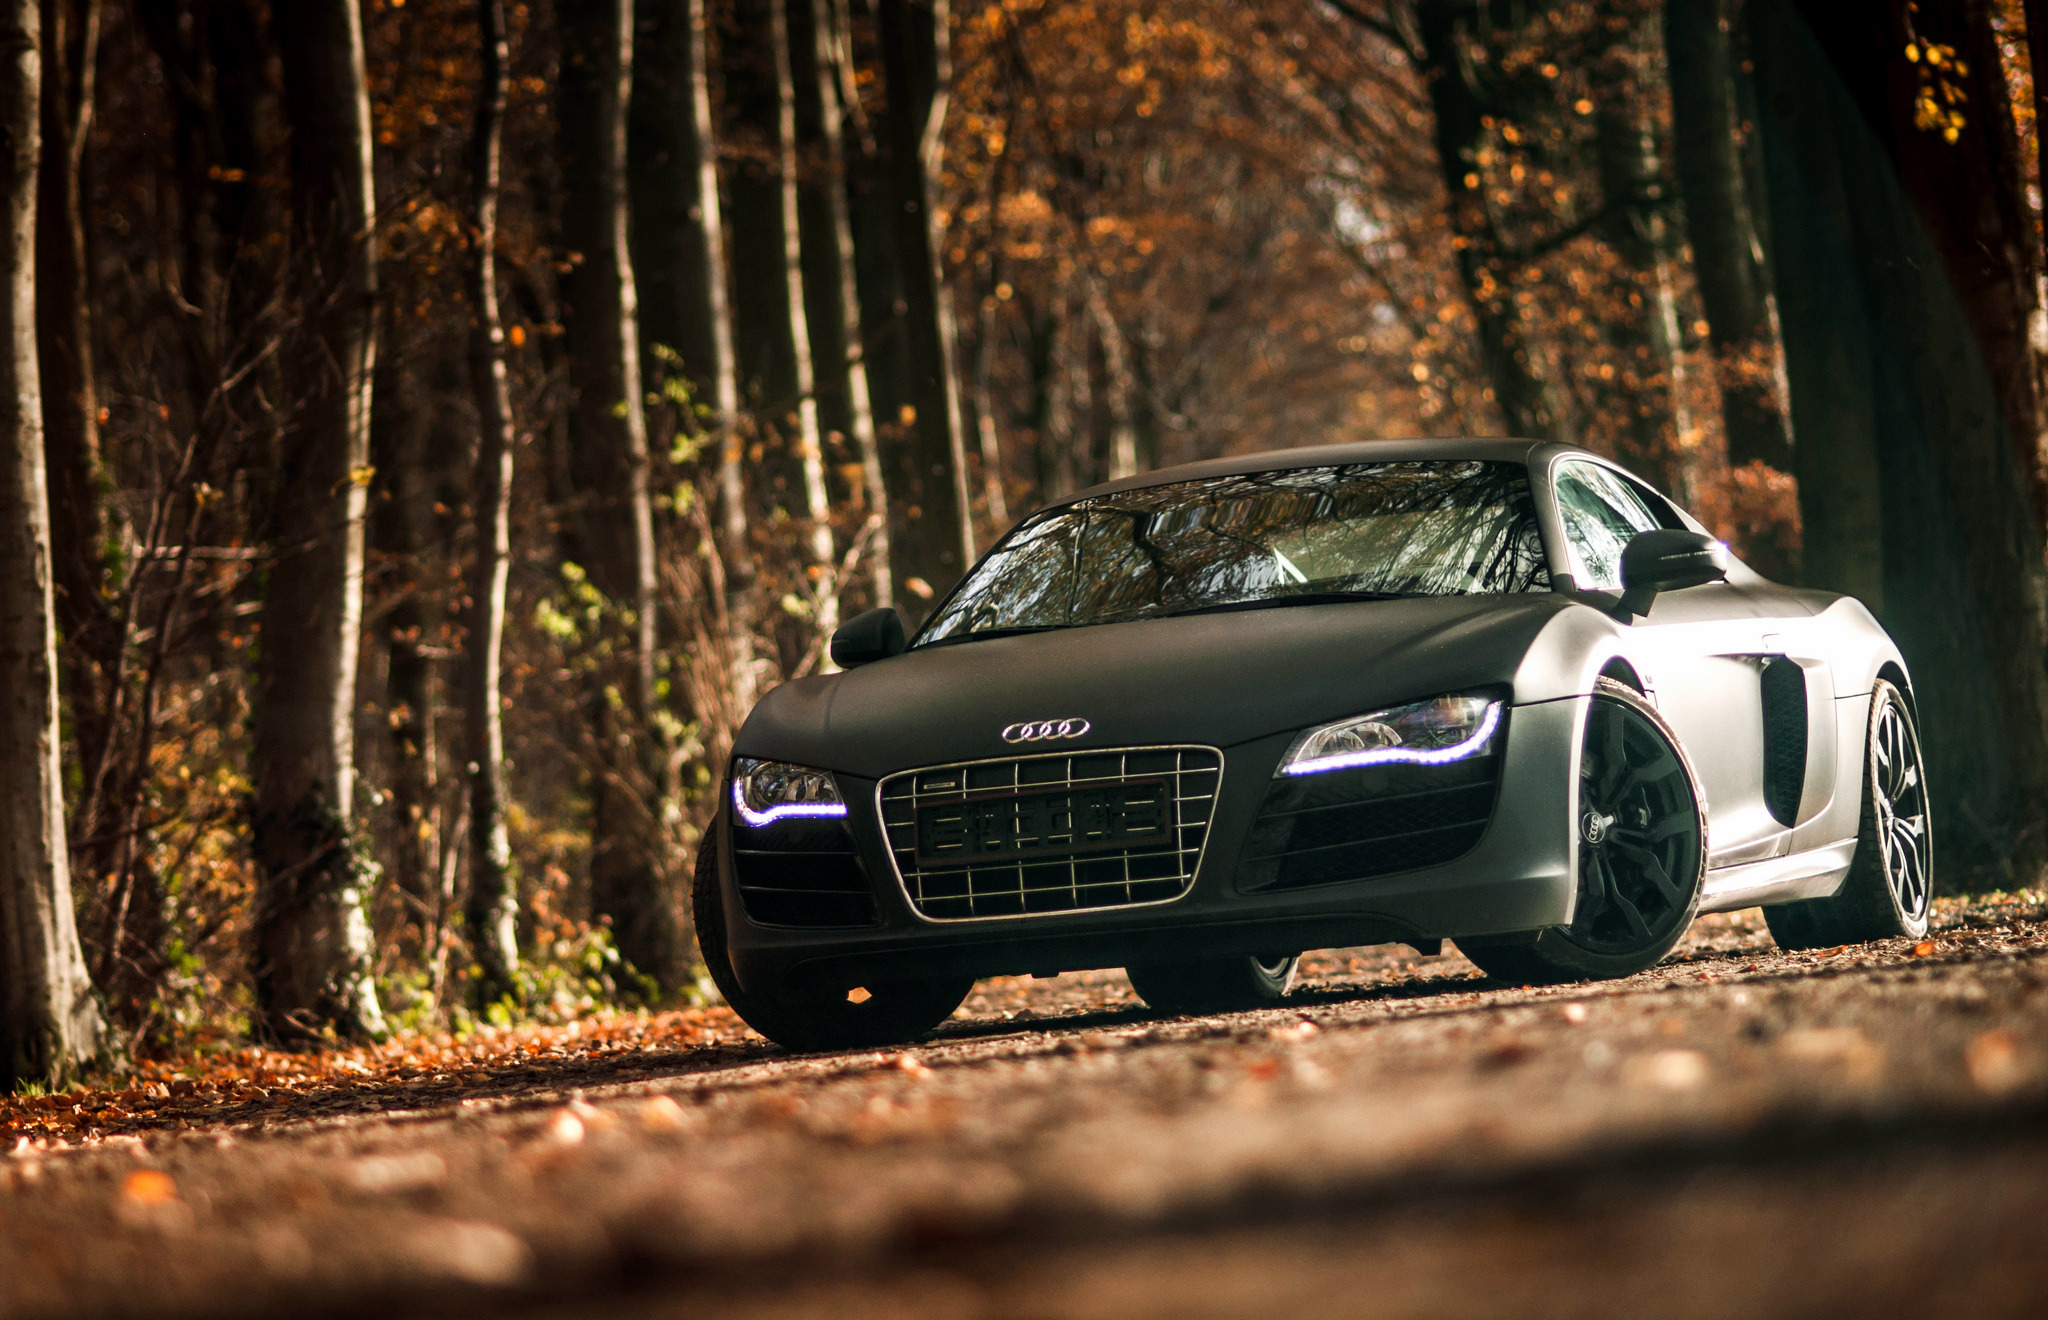 127257 download wallpaper Audi, Sports, Cars, Sports Car, R8, V10 screensavers and pictures for free